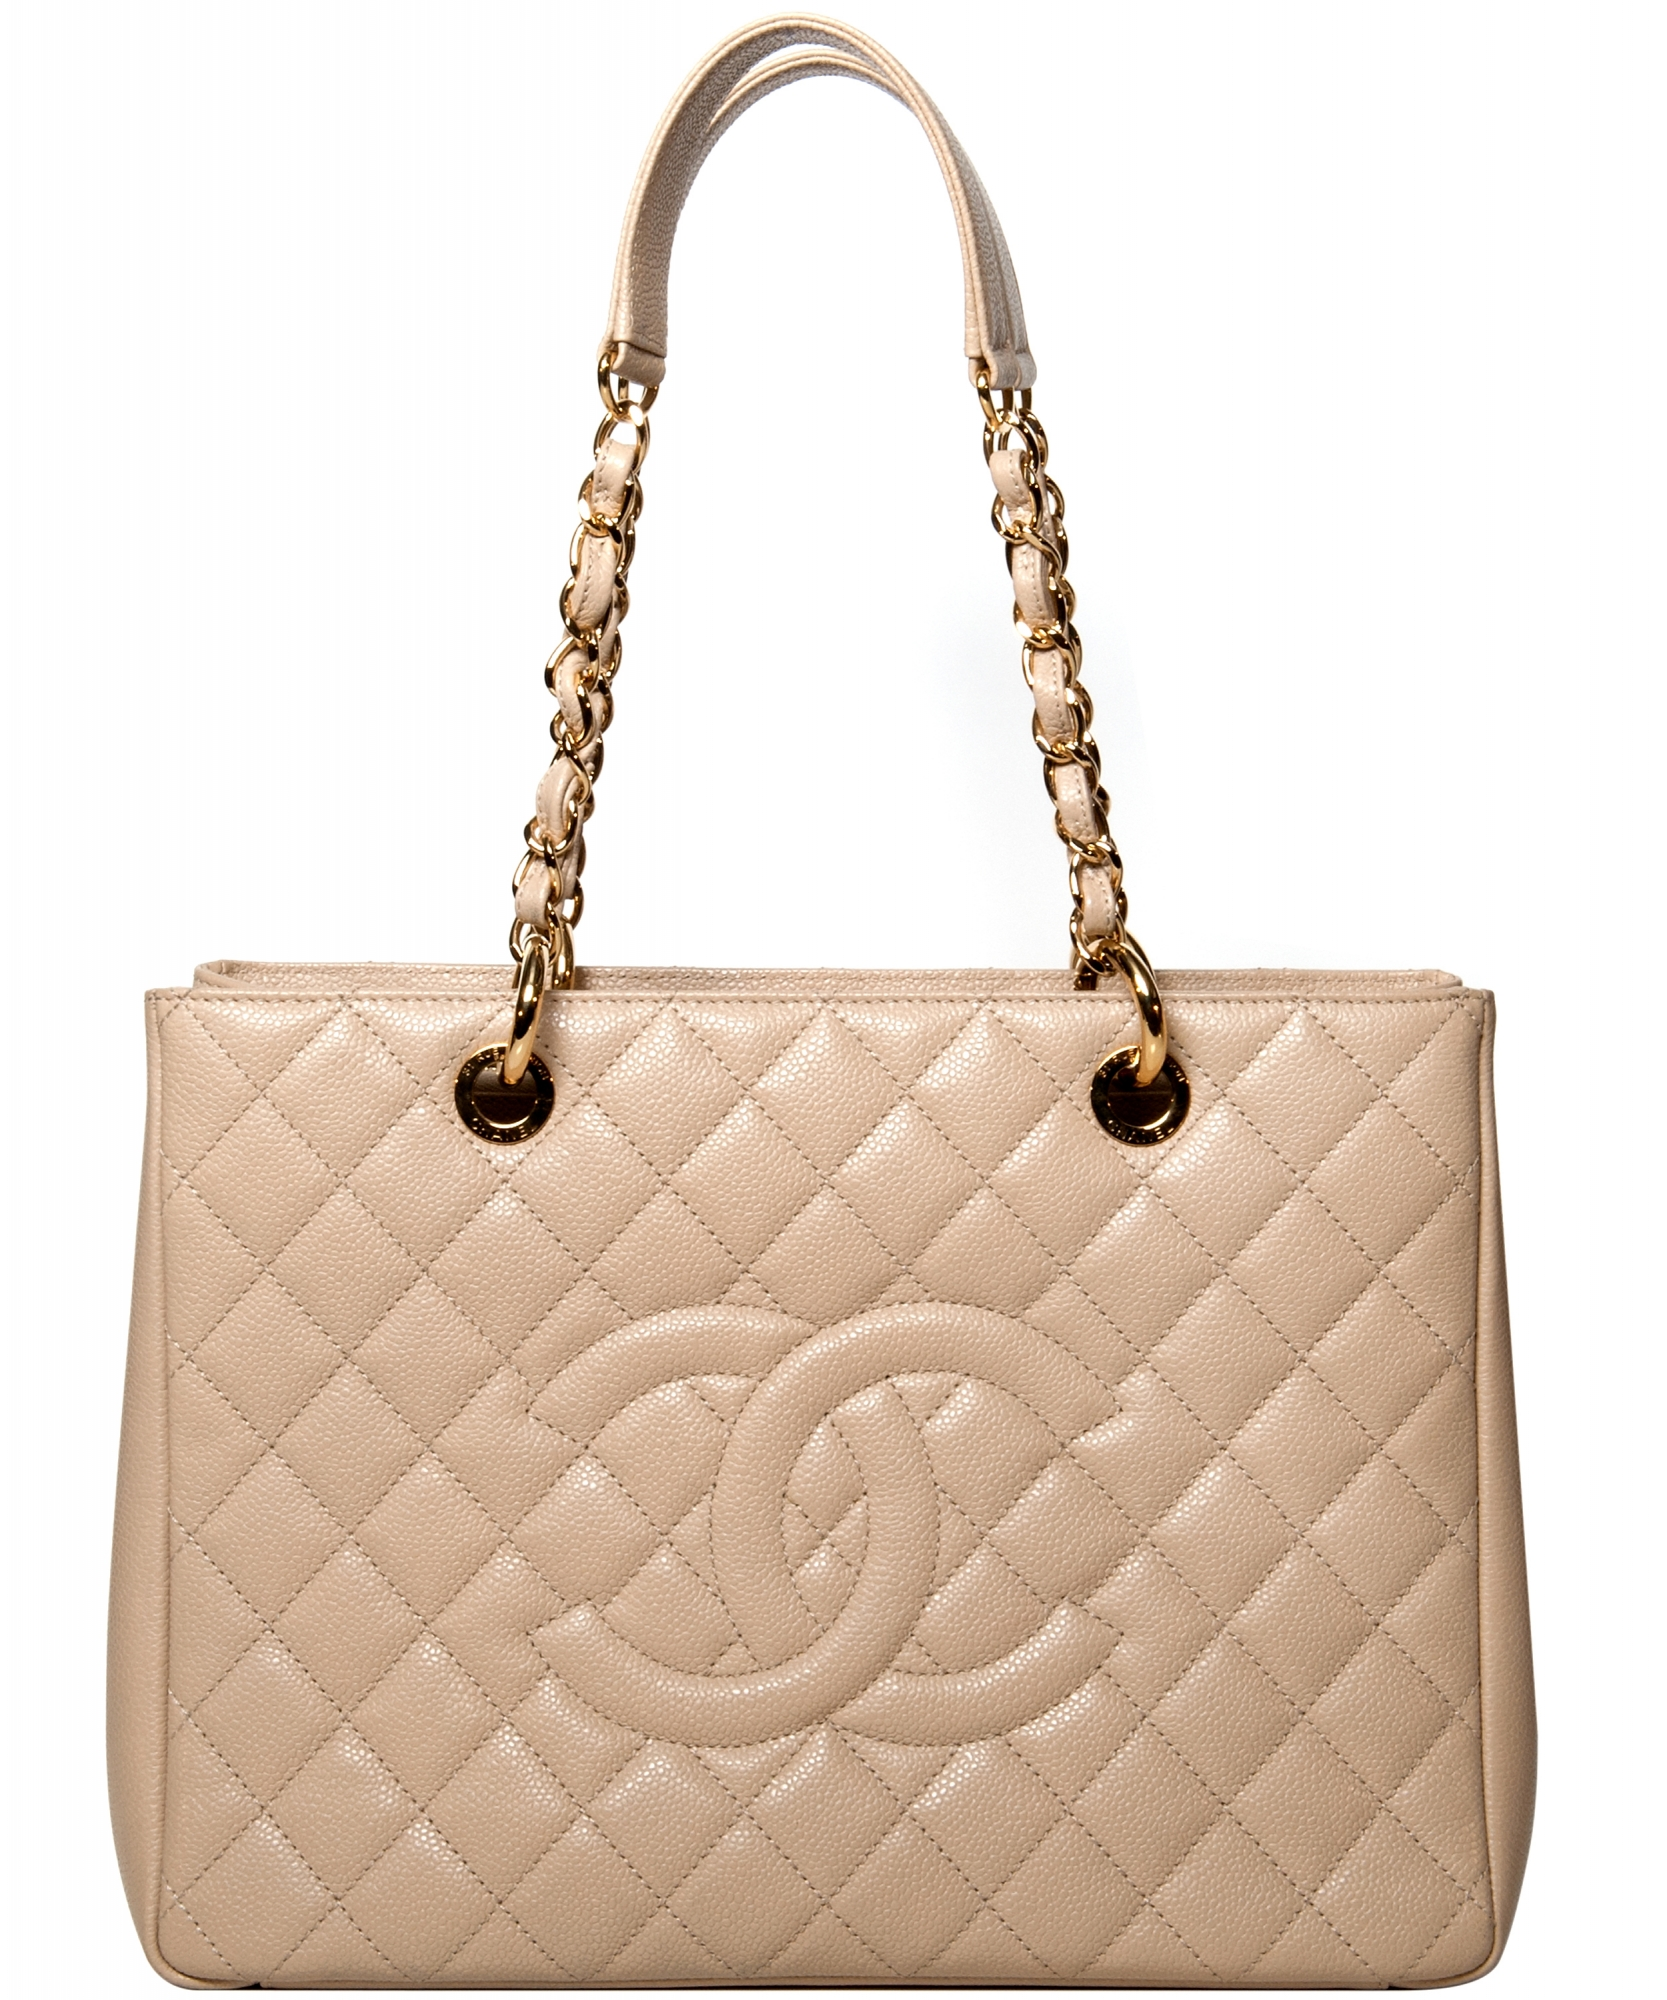 1d447789a929 Chanel Beige Leather GST Grand Shopping Tote